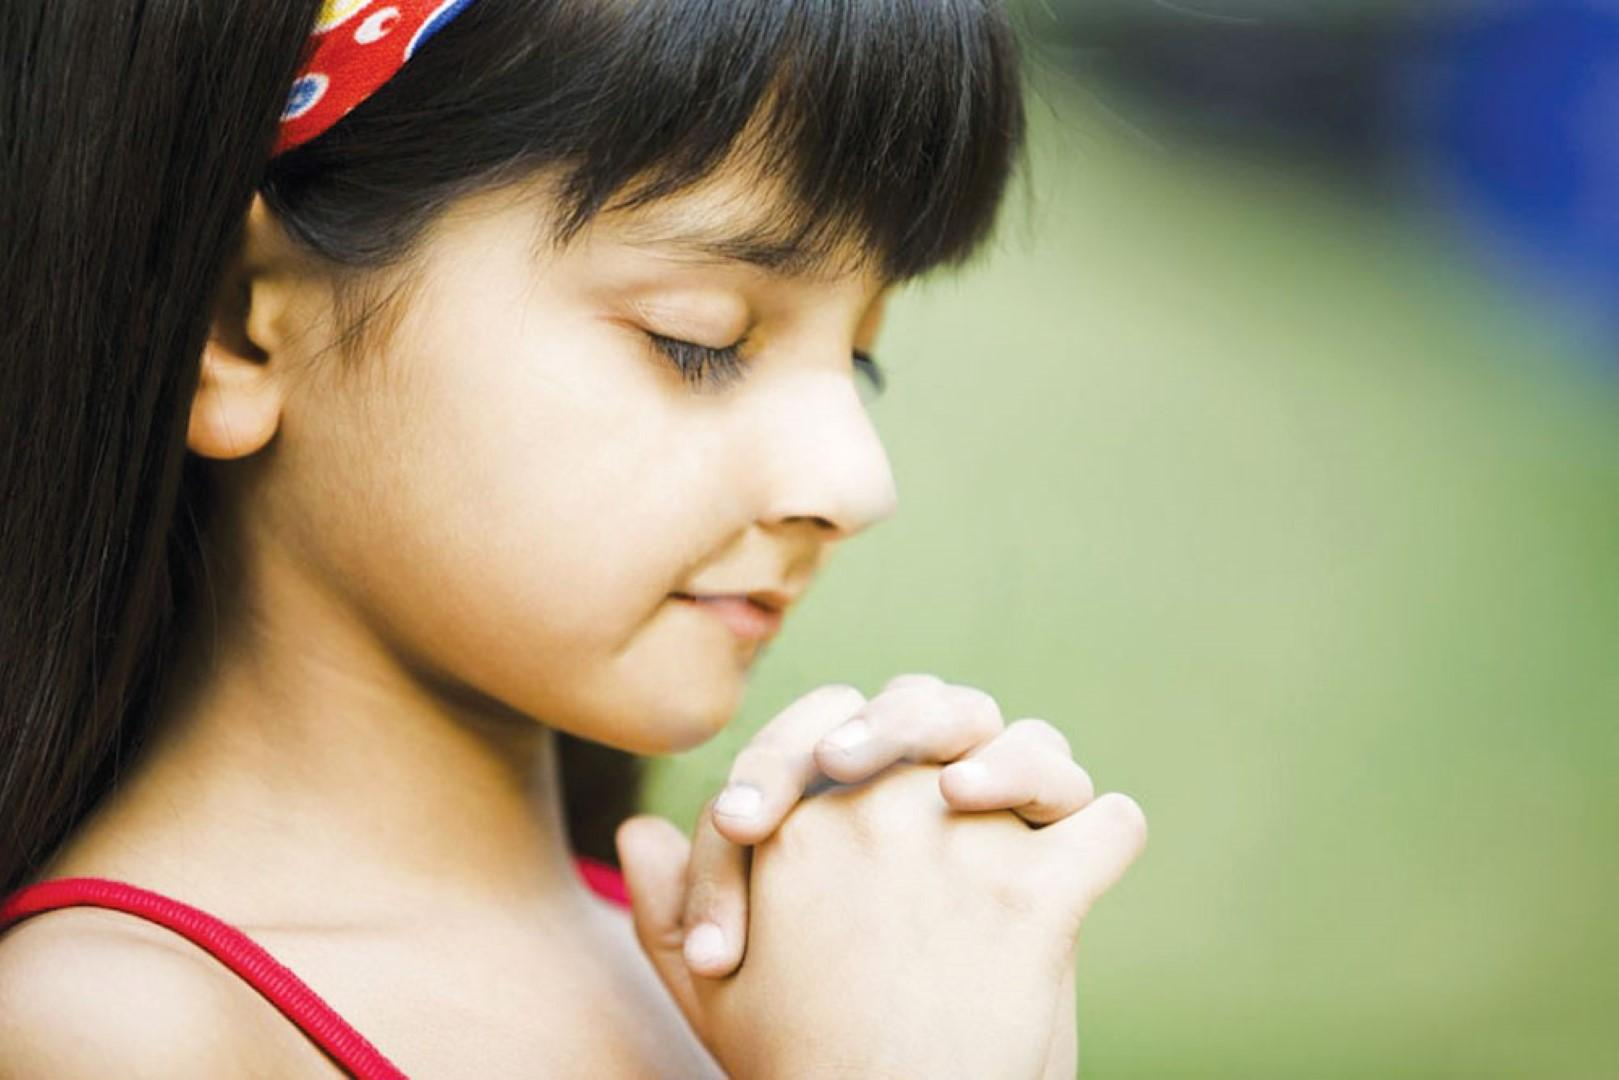 The significance of prayer